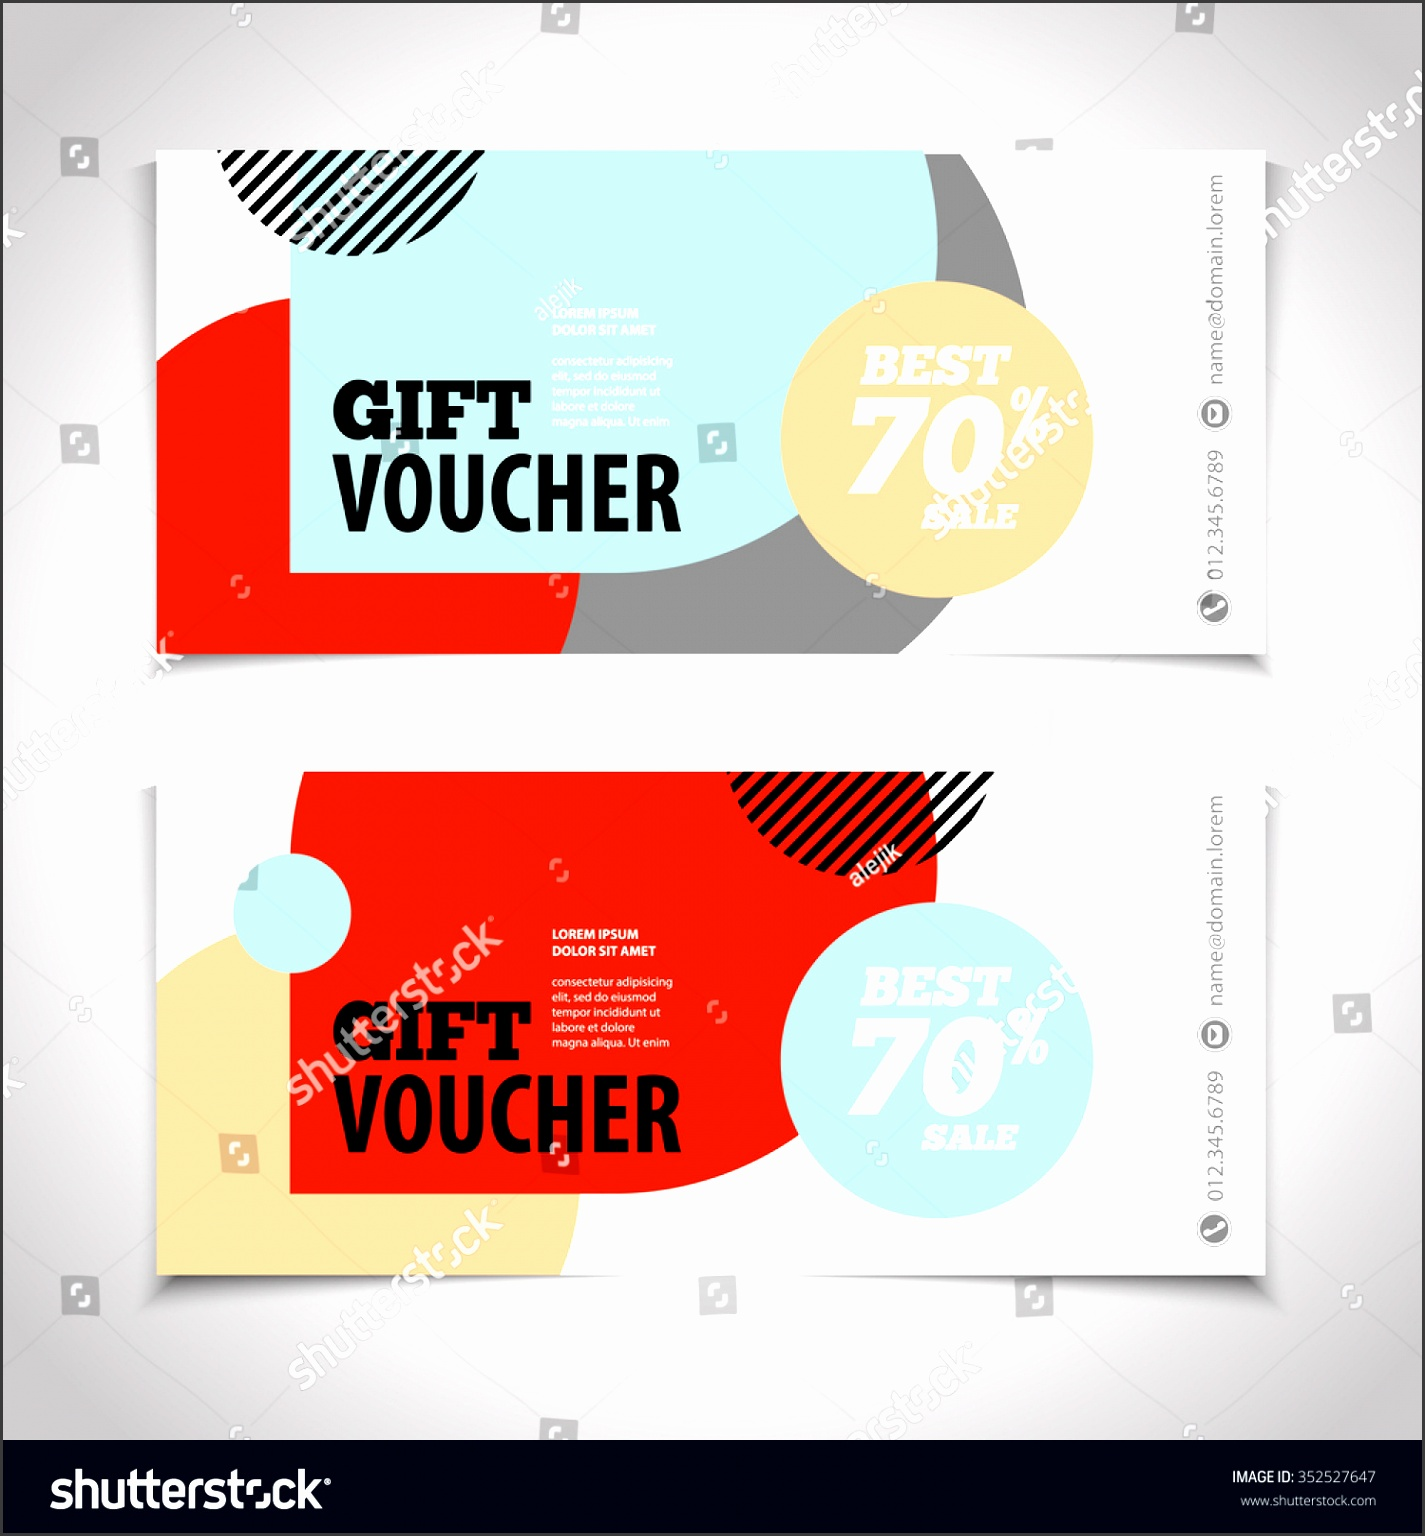 coupon voucher design template 30 free word the easiest coupon maker to create print and share your business coupons make a coupon in 5 minutes